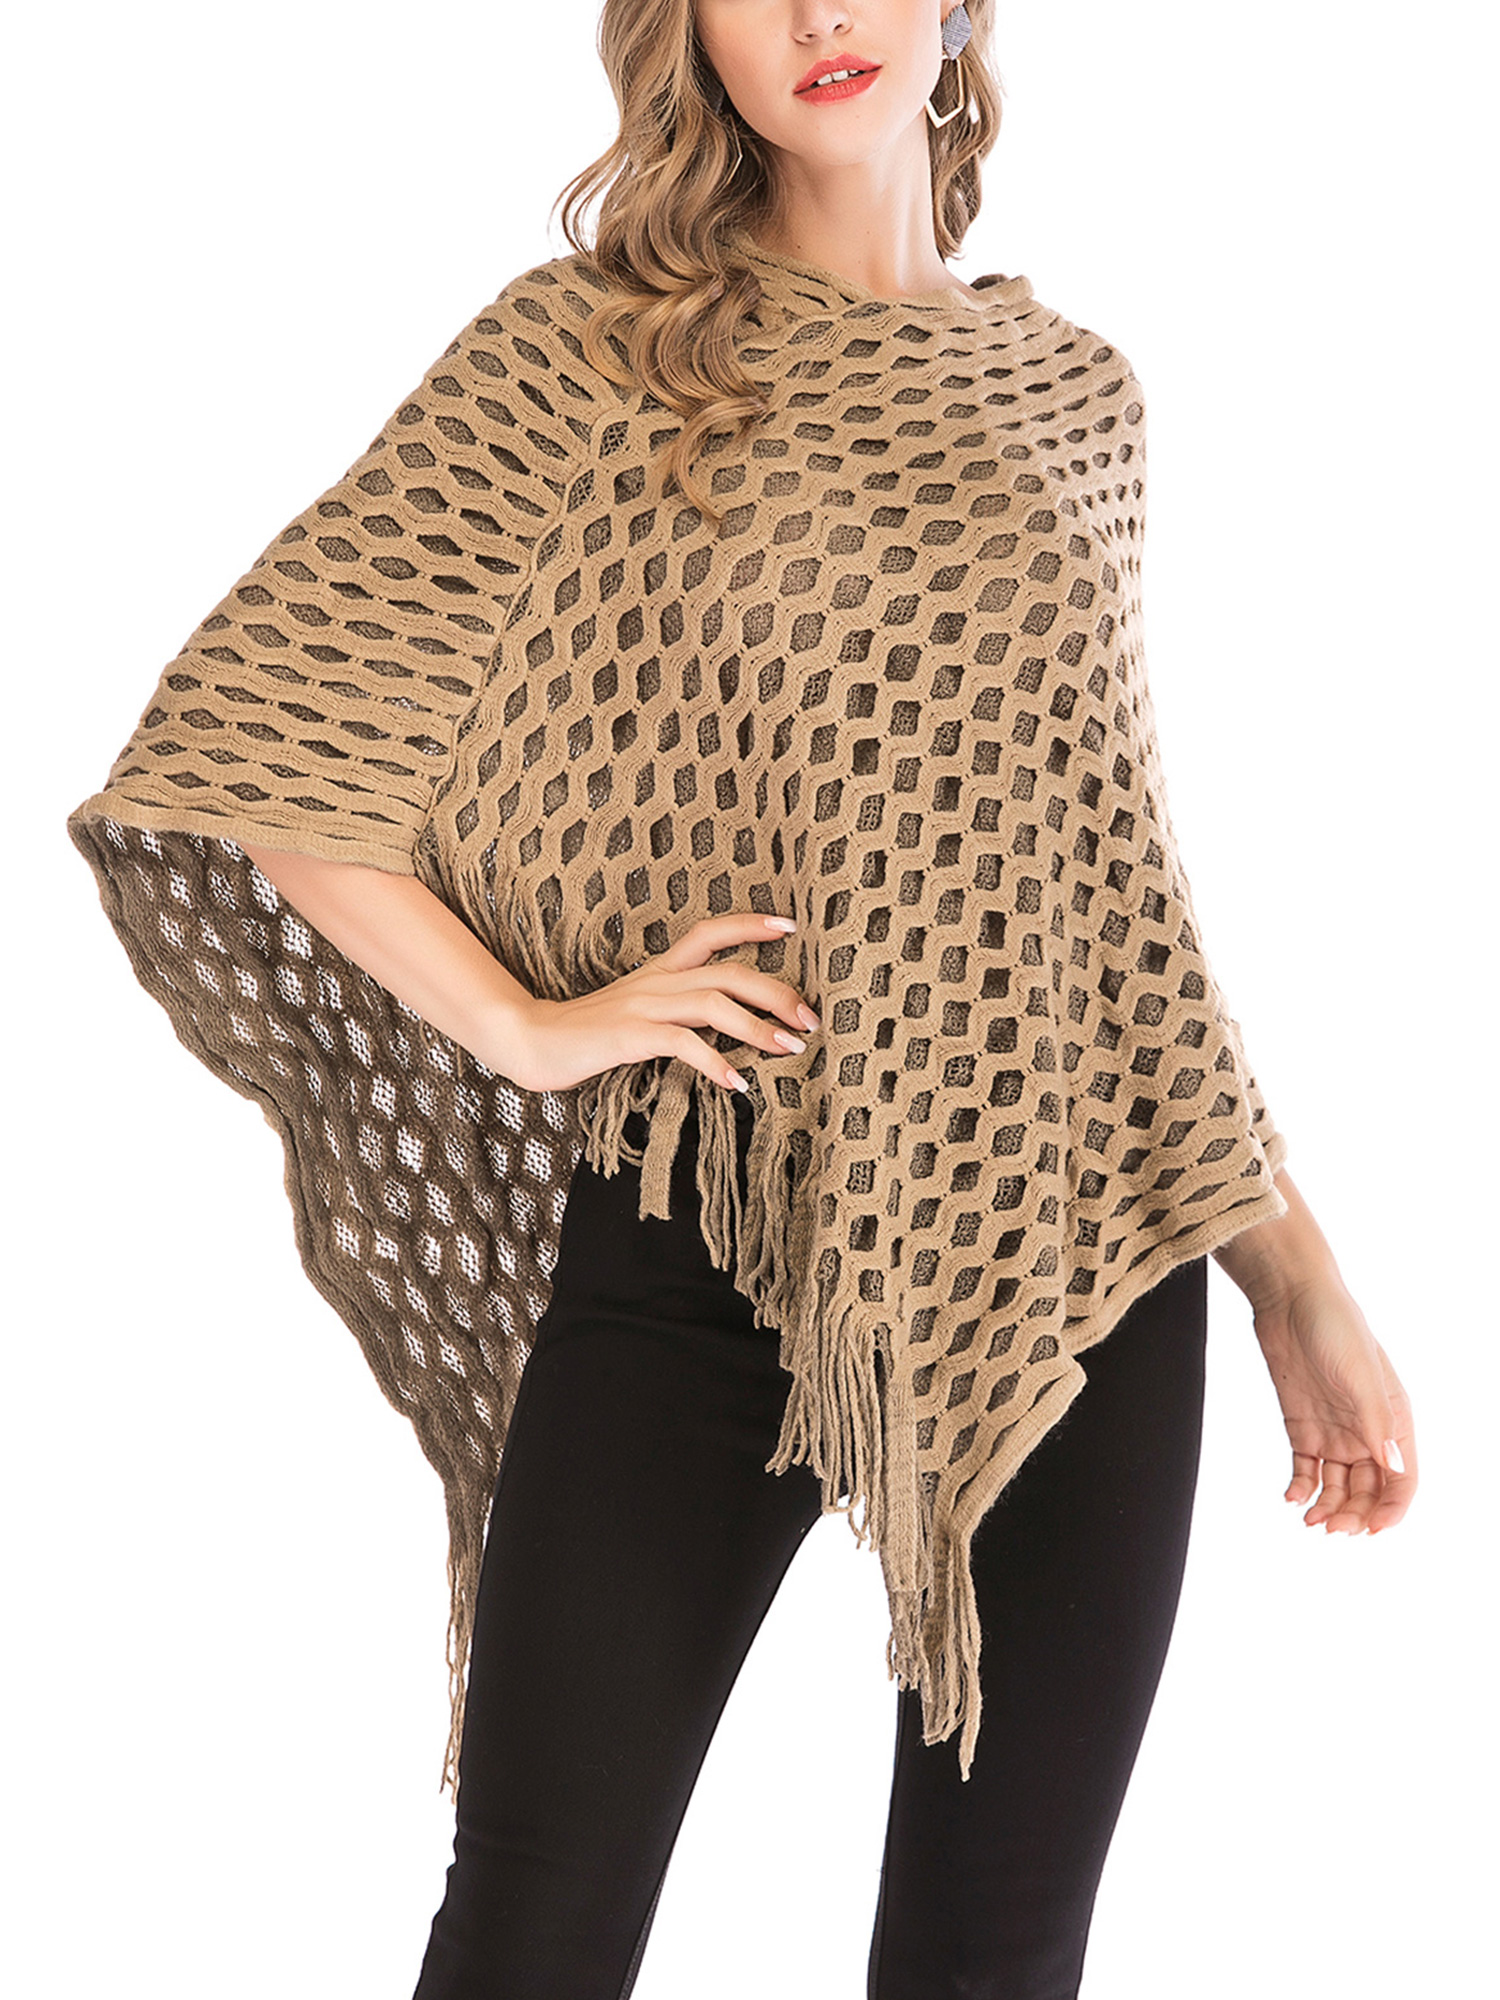 So Chic and adorable Great Gift Idea! Cheetah Print Poncho with fringe Warm and Cozy